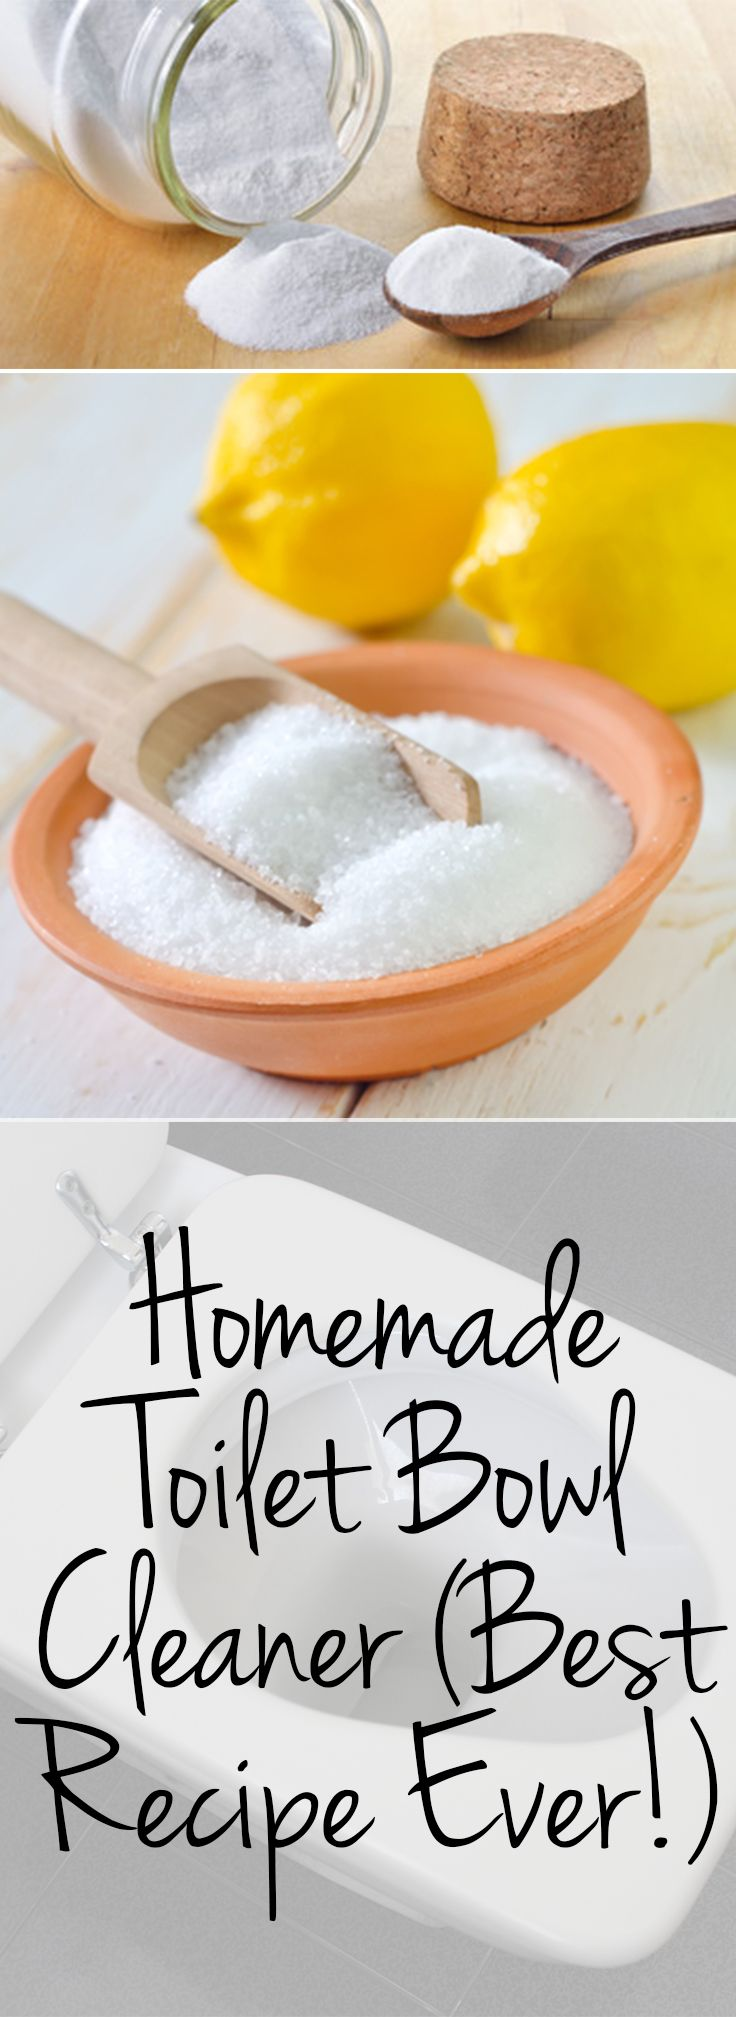 Homemade Toilet Bowl Cleaner (Best Recipe Ever!)        #bathroomcleaning #cleaningtips http://www.cleanerscambridge.com/